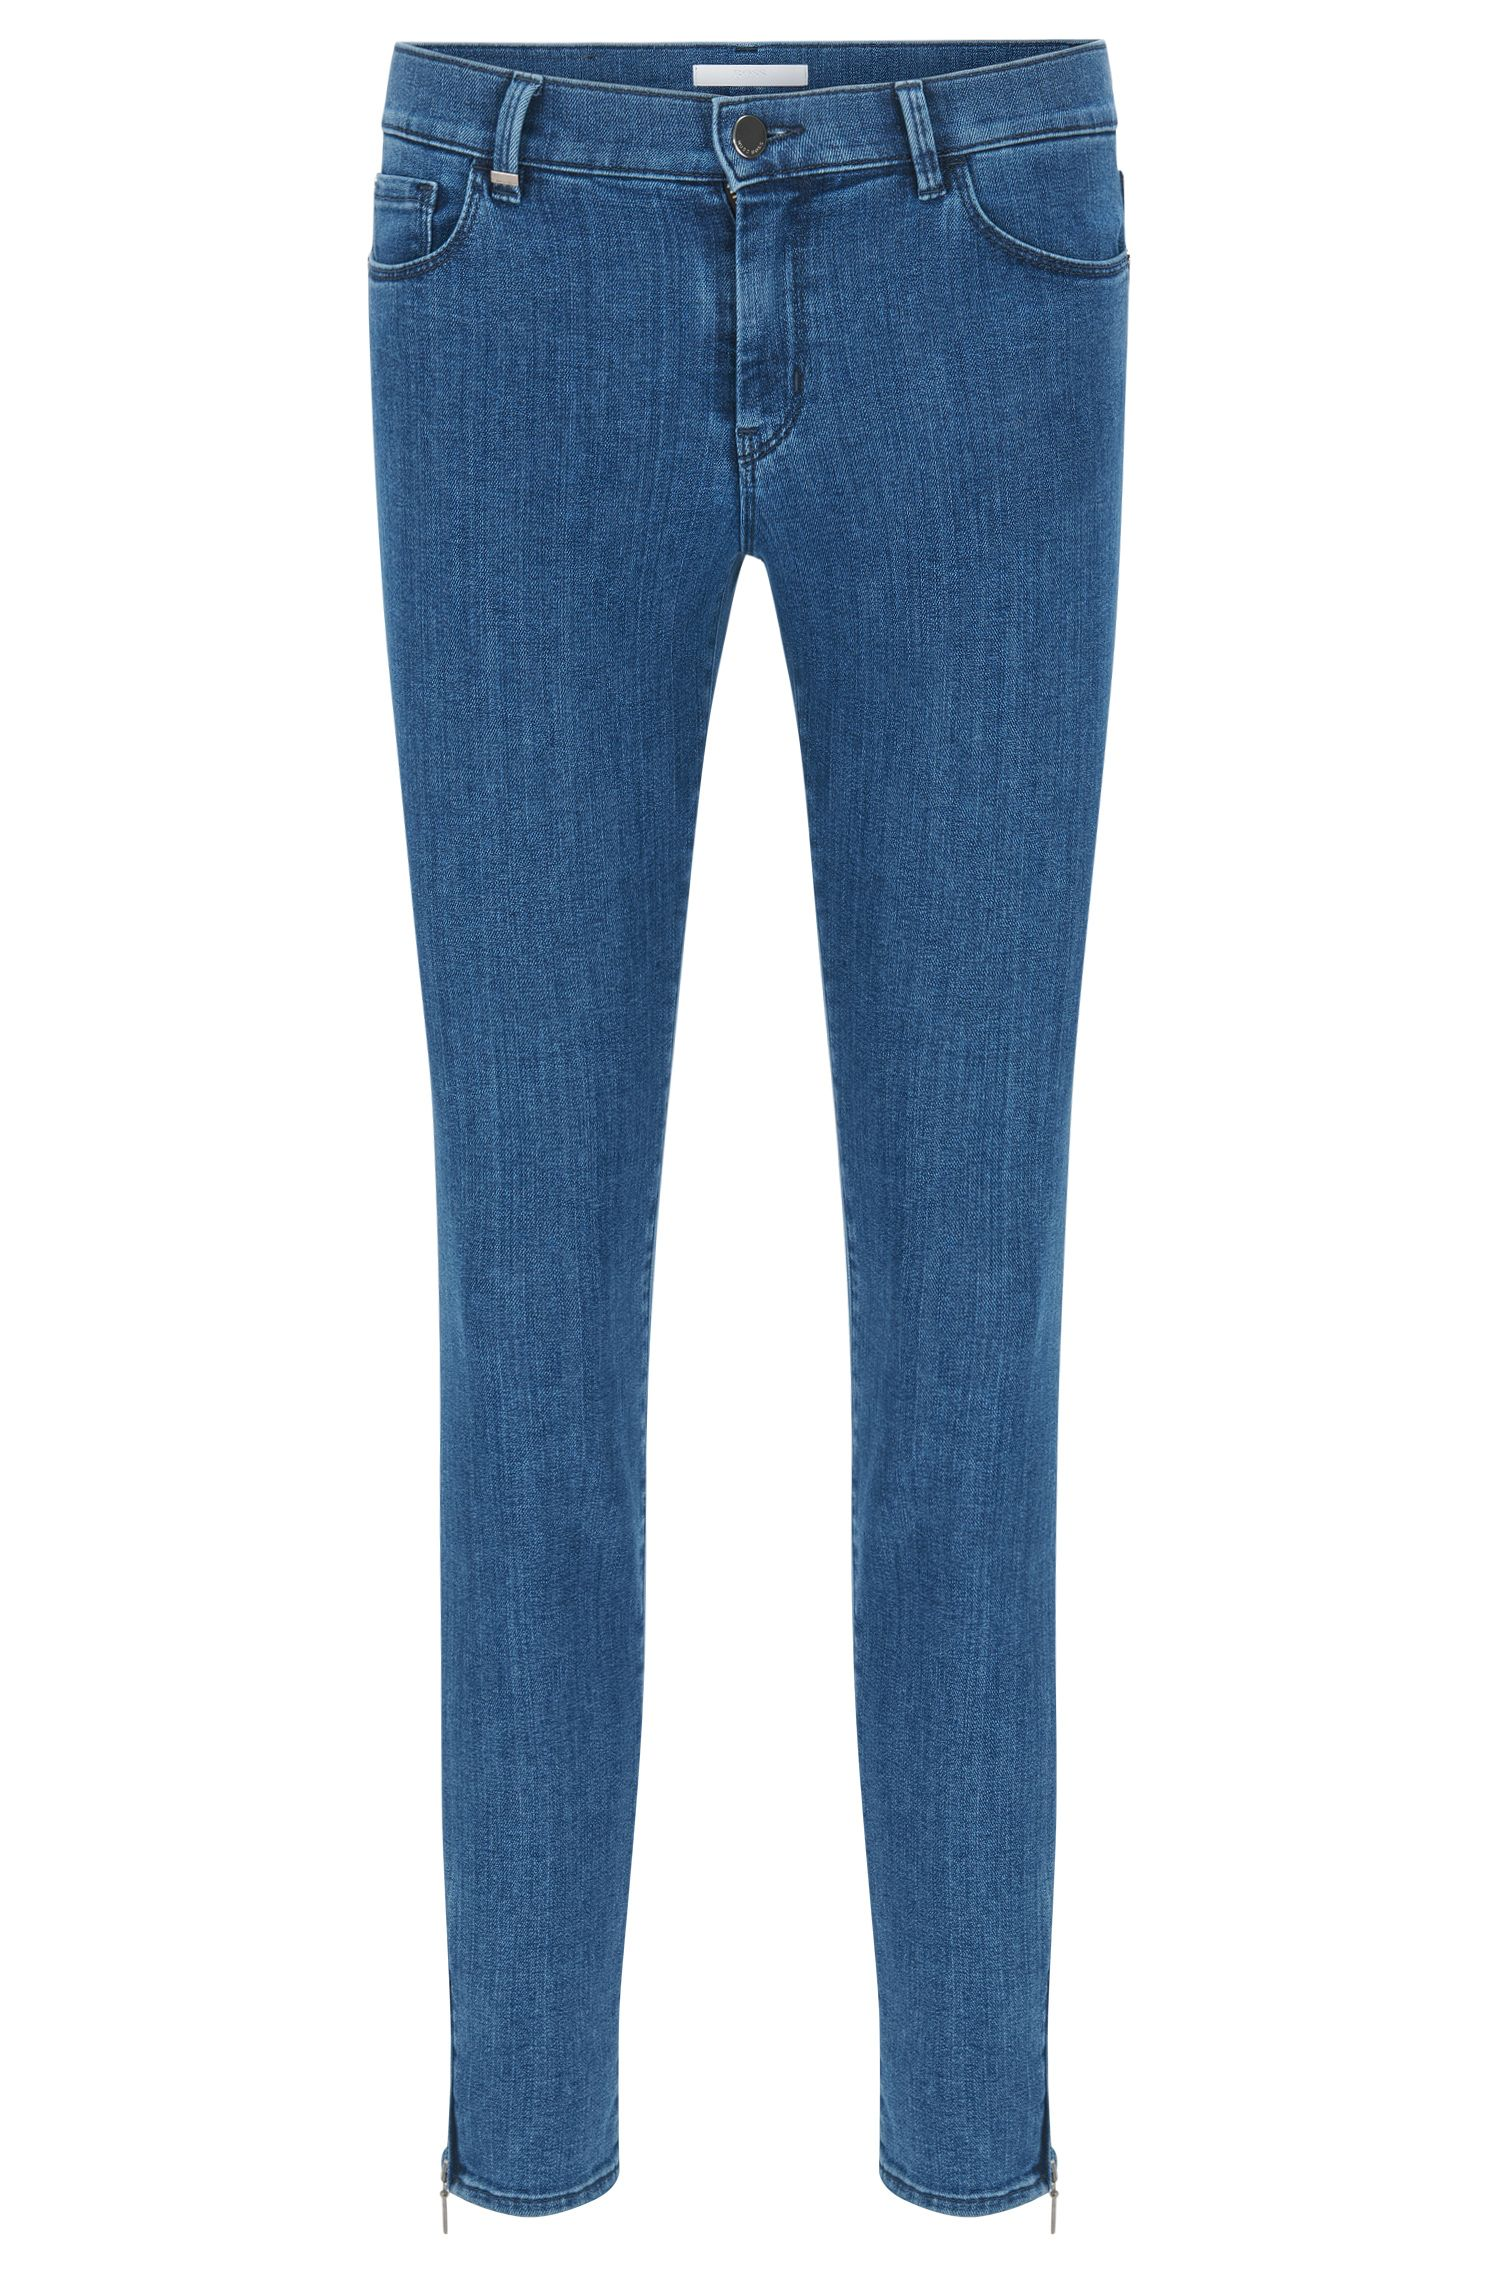 Jeans Slim Fit en denim stretch confortable